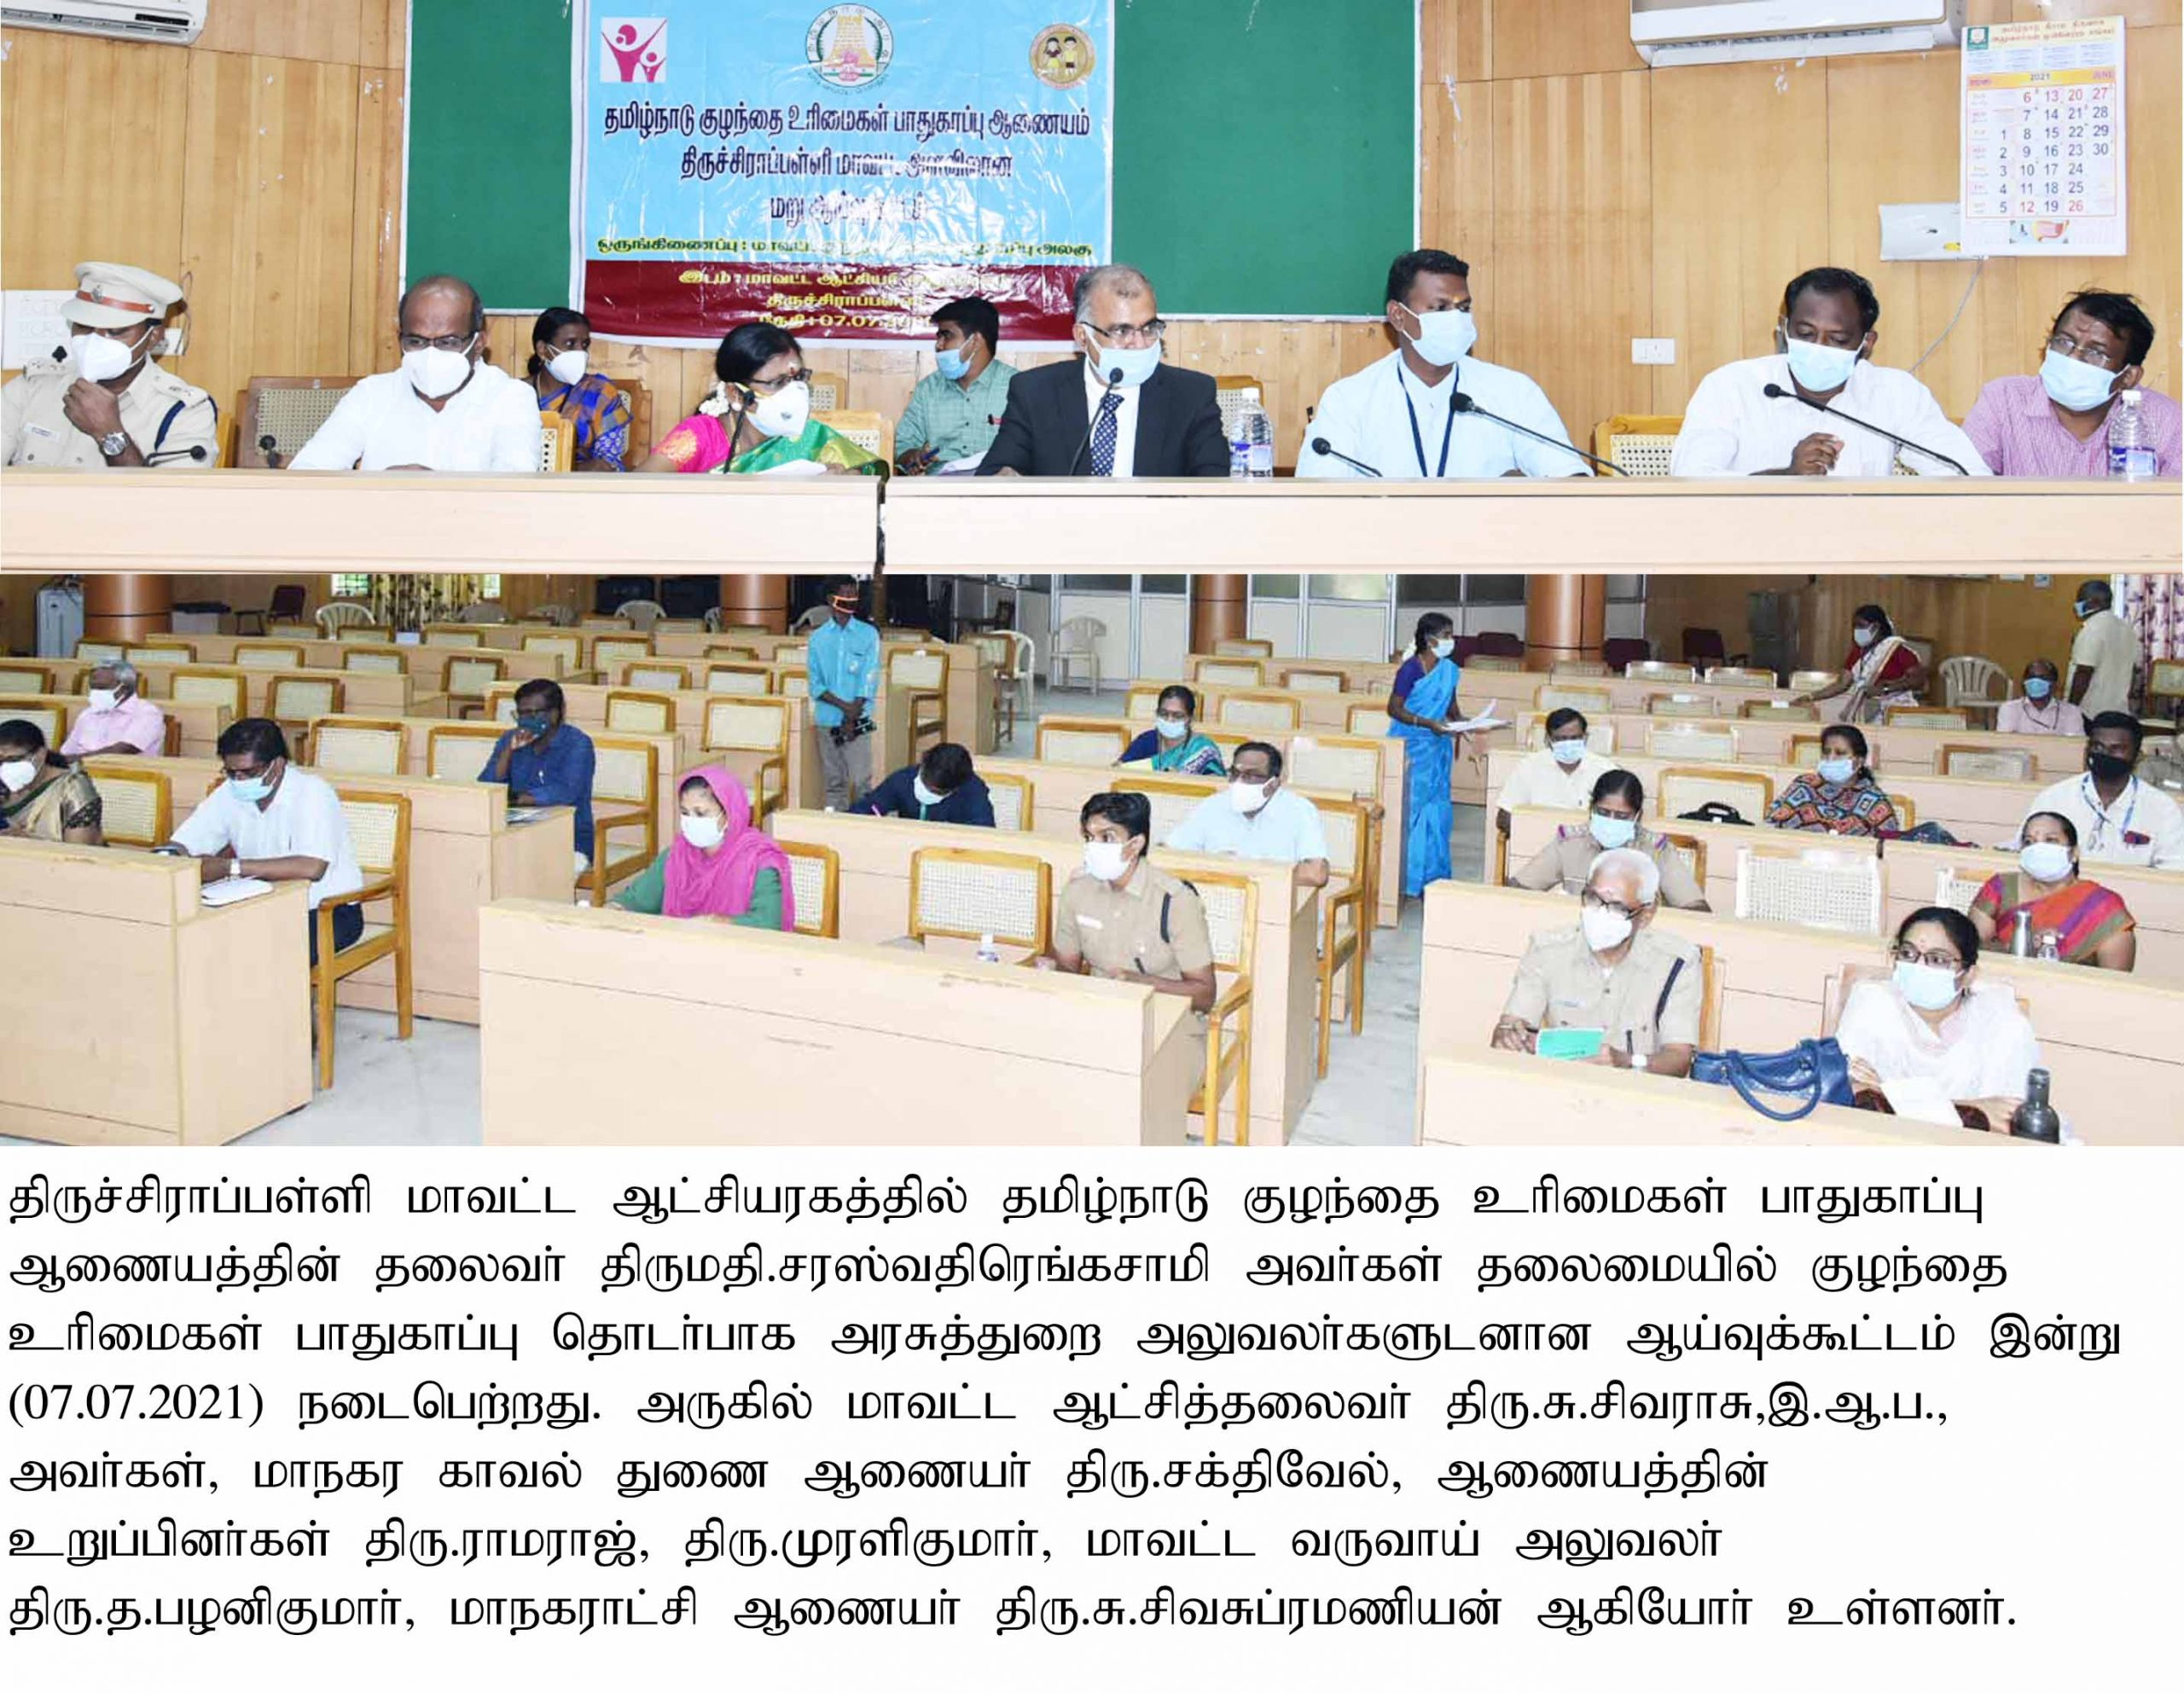 Meeting was held Regarding Child rights Protection on 7-7-21